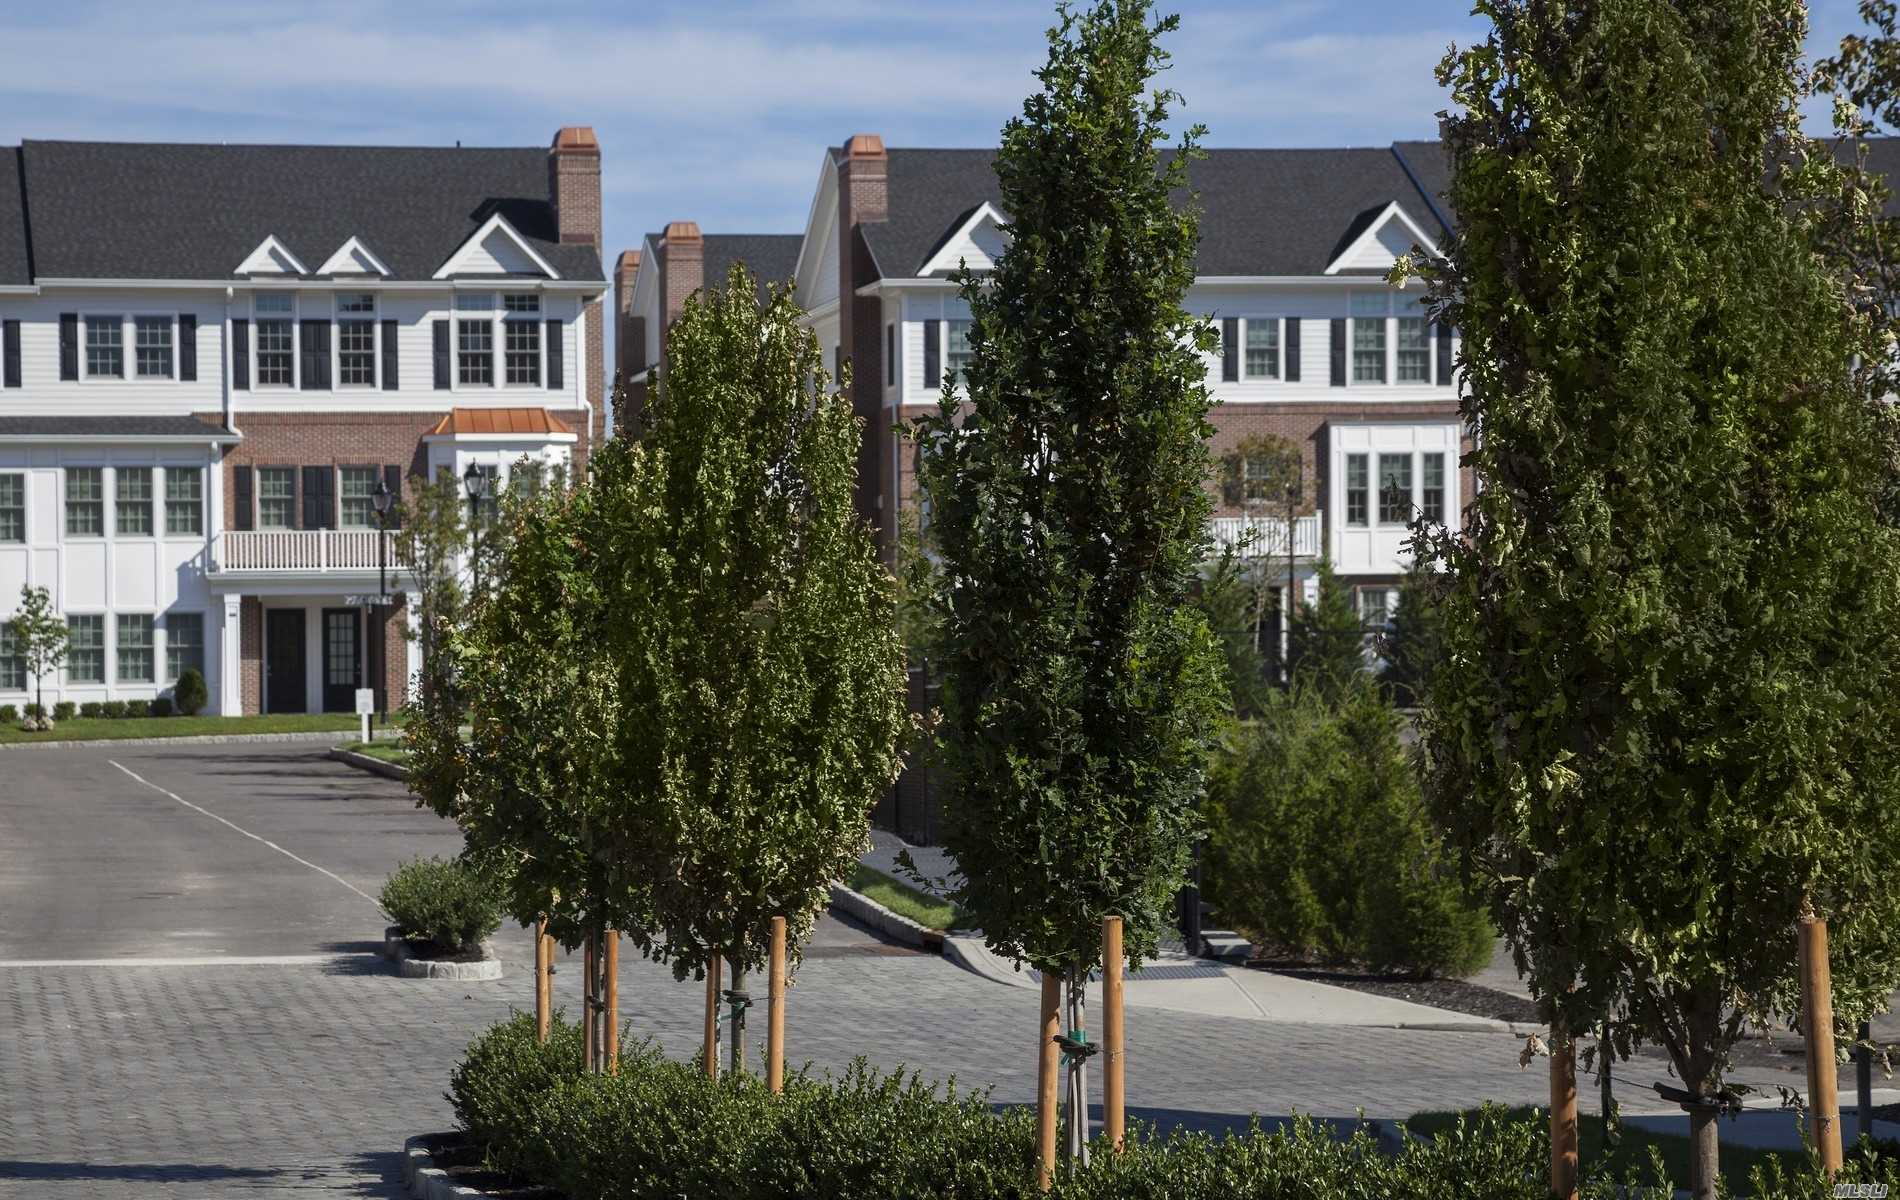 Luxury New Townhouses In The Heart Of Roslyn Village. Elegant 3 Bed, 3 Bath Condo Featuring Top Of The Line Kitchen And Baths. Gas Fireplace, Private Elevator, Sun Room, And 2 Car Garage. Set On 12-Acres With Waterside Promenade, Kayaks, Private Clubhouse And Concierge. True Urban-Suburban Living. 1 Block To Town, Restaurants, Shopping, Library And Theater.